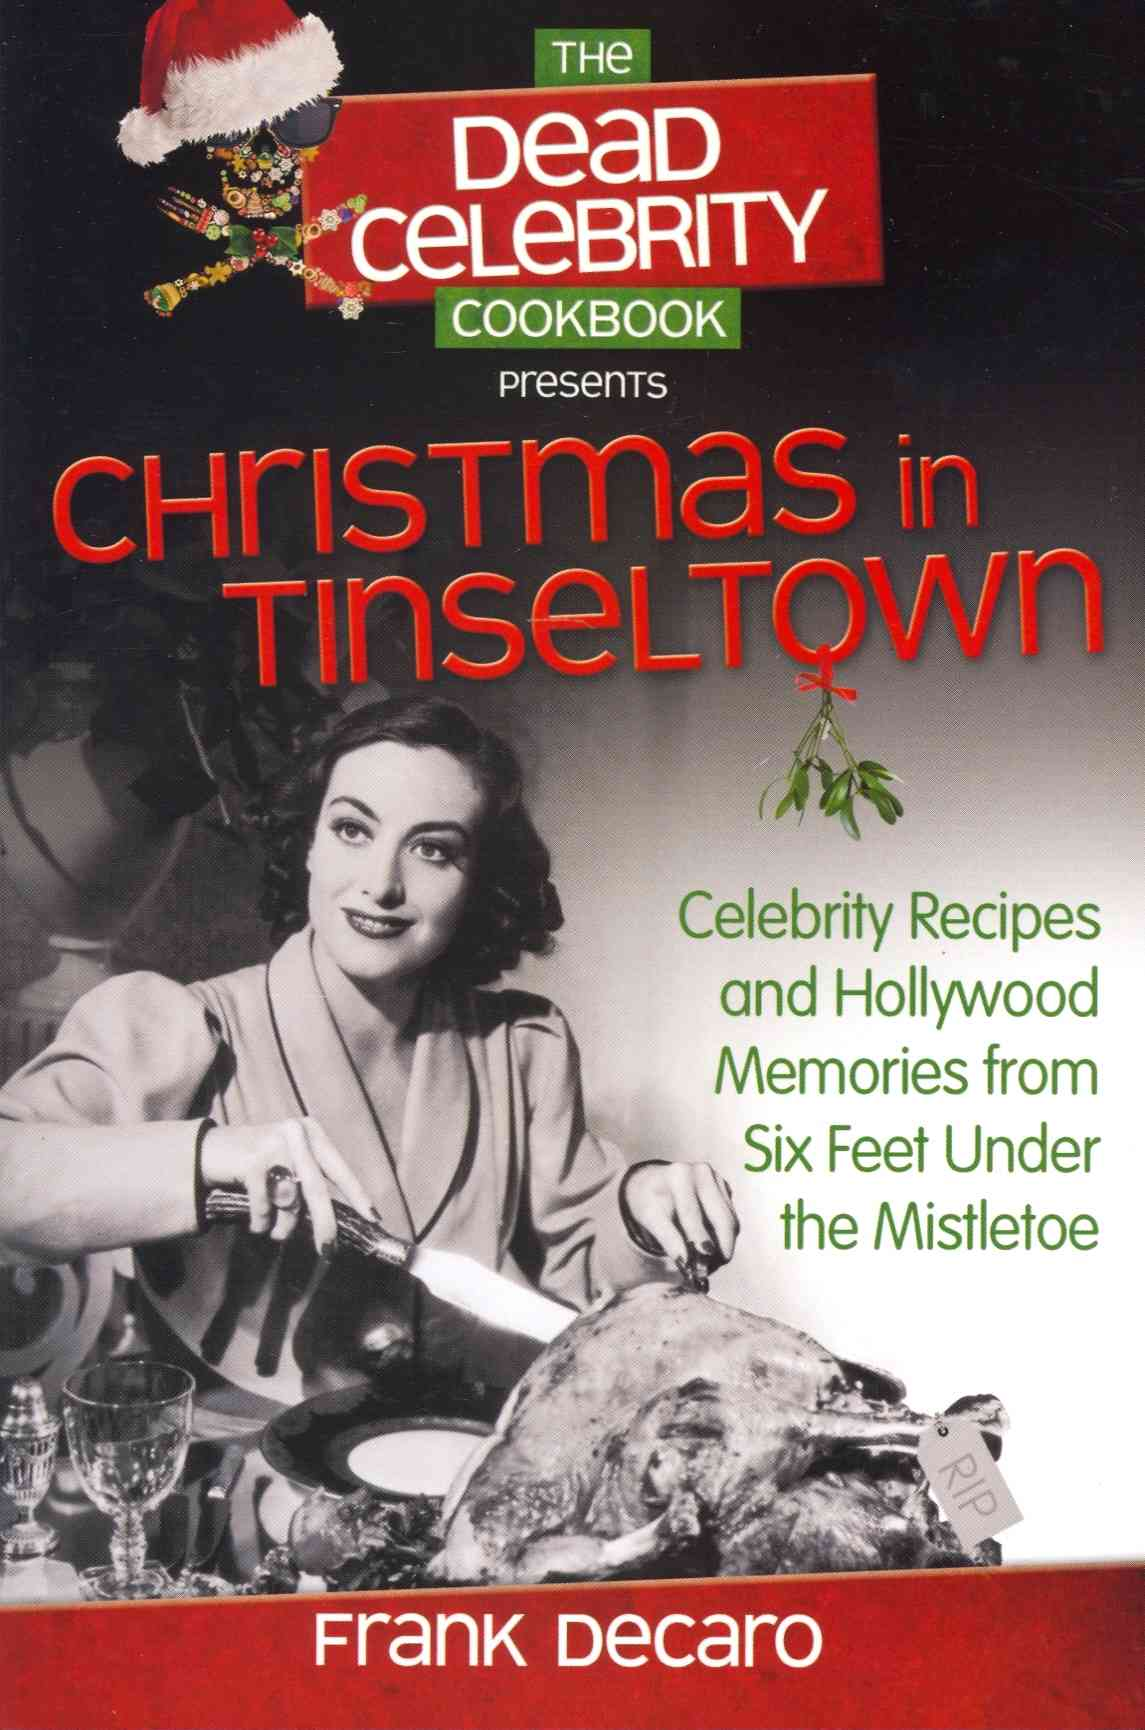 The Dead Celebrity Cookbook Presents Christmas in Tinseltown: Celebrity Recipes and Hollywood Memories from Six F... (Paperback)